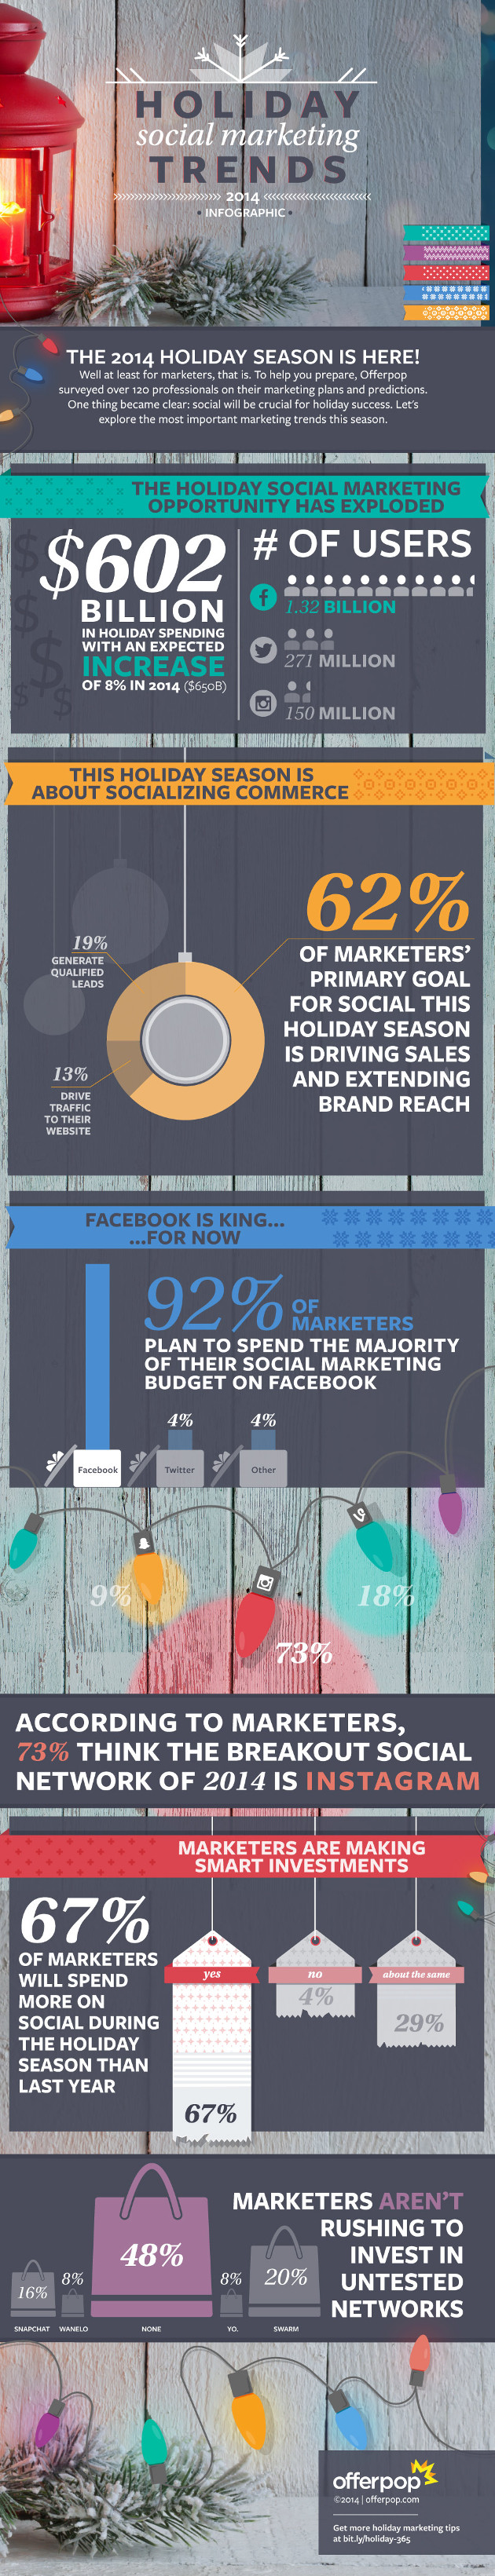 what-america-retailers-spending-social-media-this-holiday-season-infographic